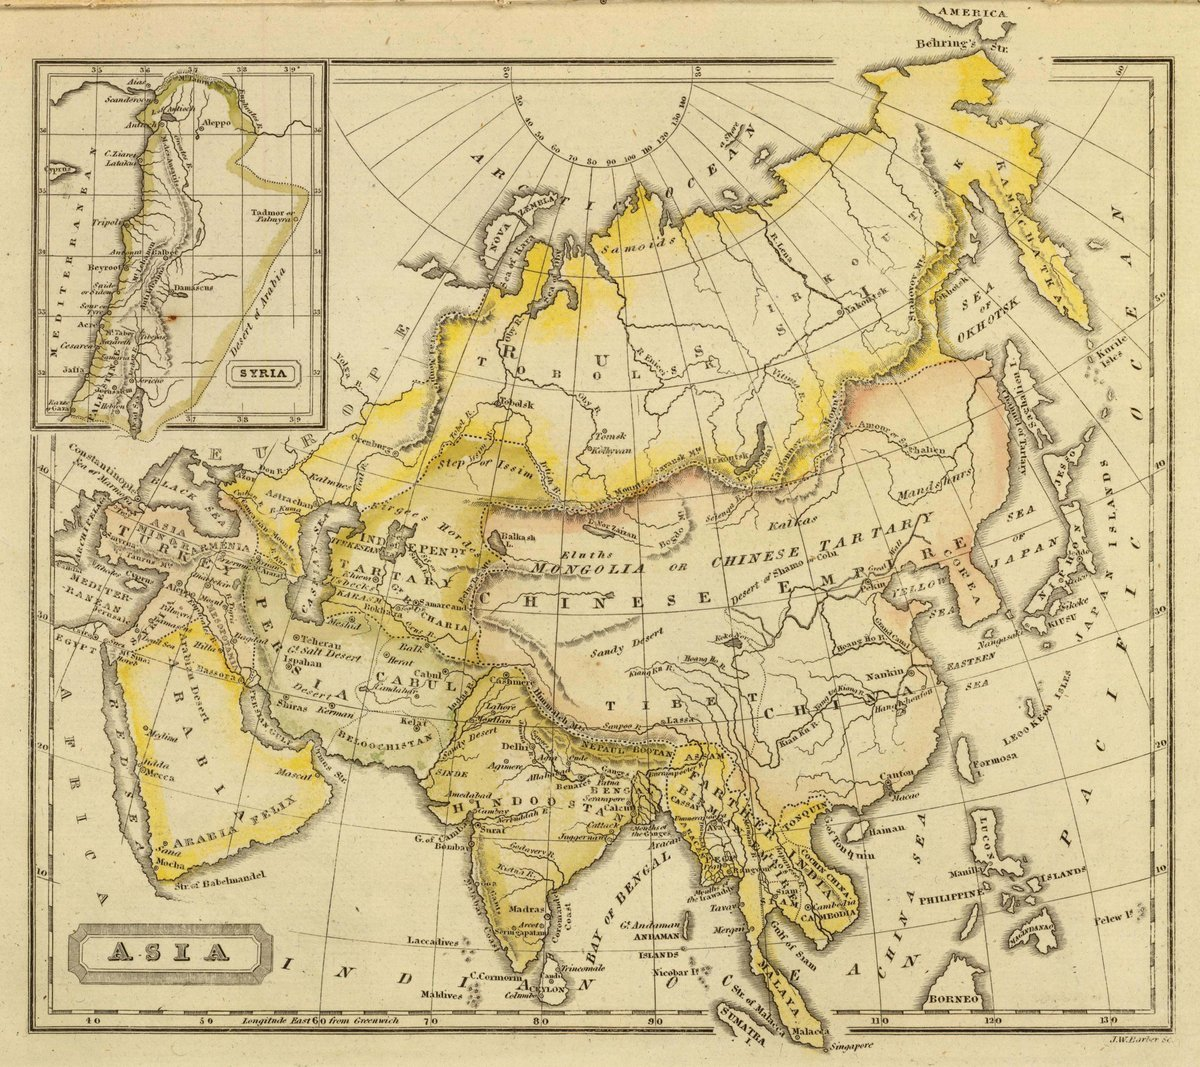 1828 School Atlas | Asia. J.W. Barber sc. (with) Syria. (Published by Richardson & Lord. Sold also by Collins & Hannay, New-York, 1828) | Antique Vintage Map Reprint